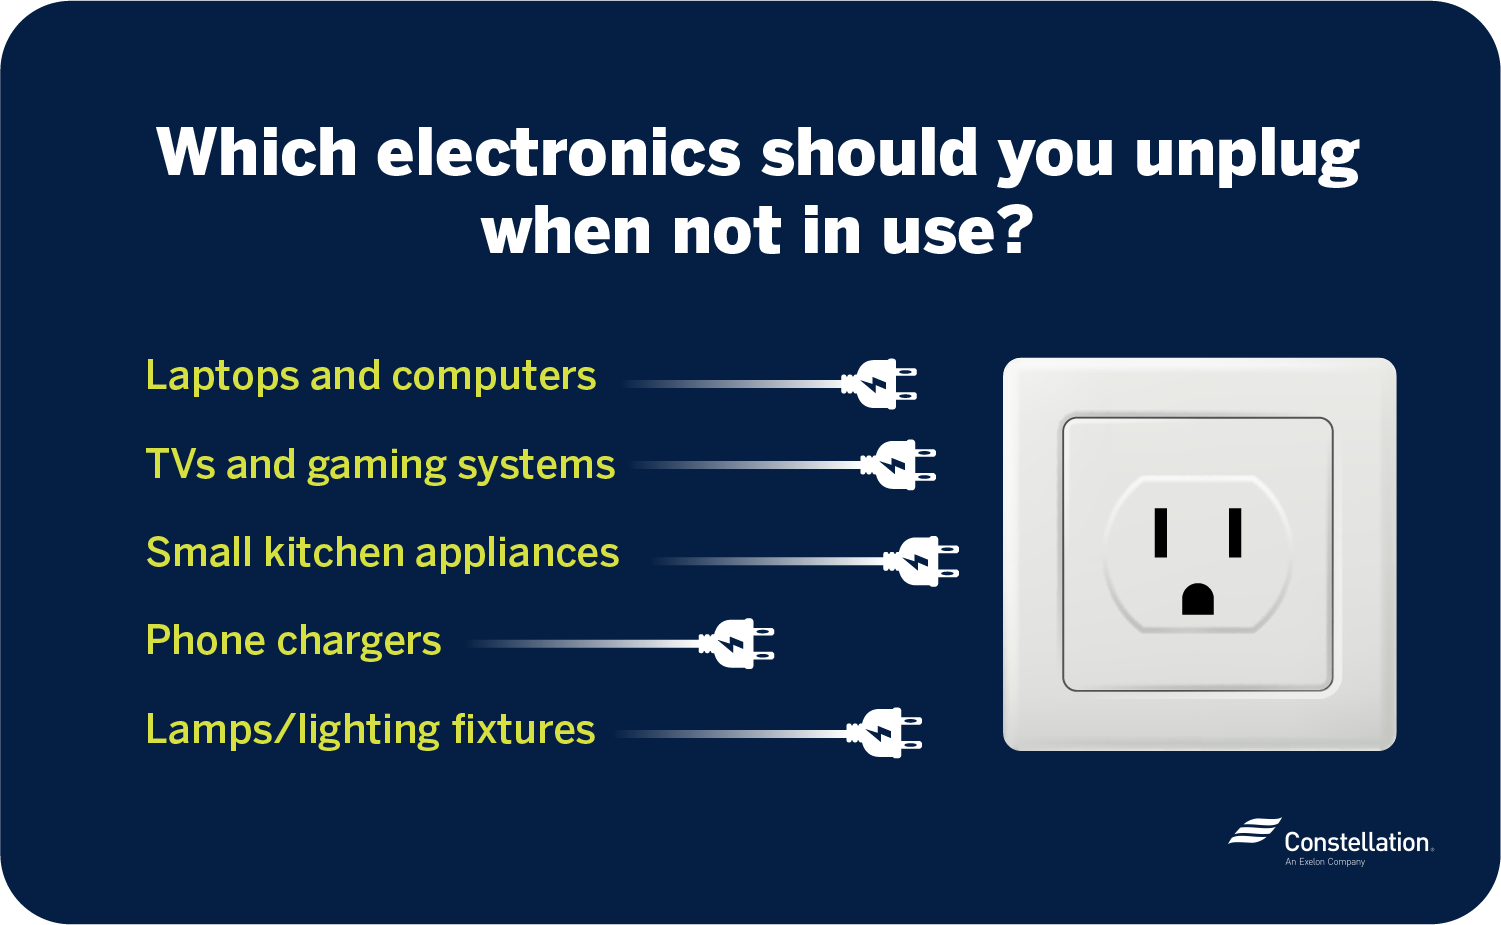 Which electronics should you unplug when not in use?